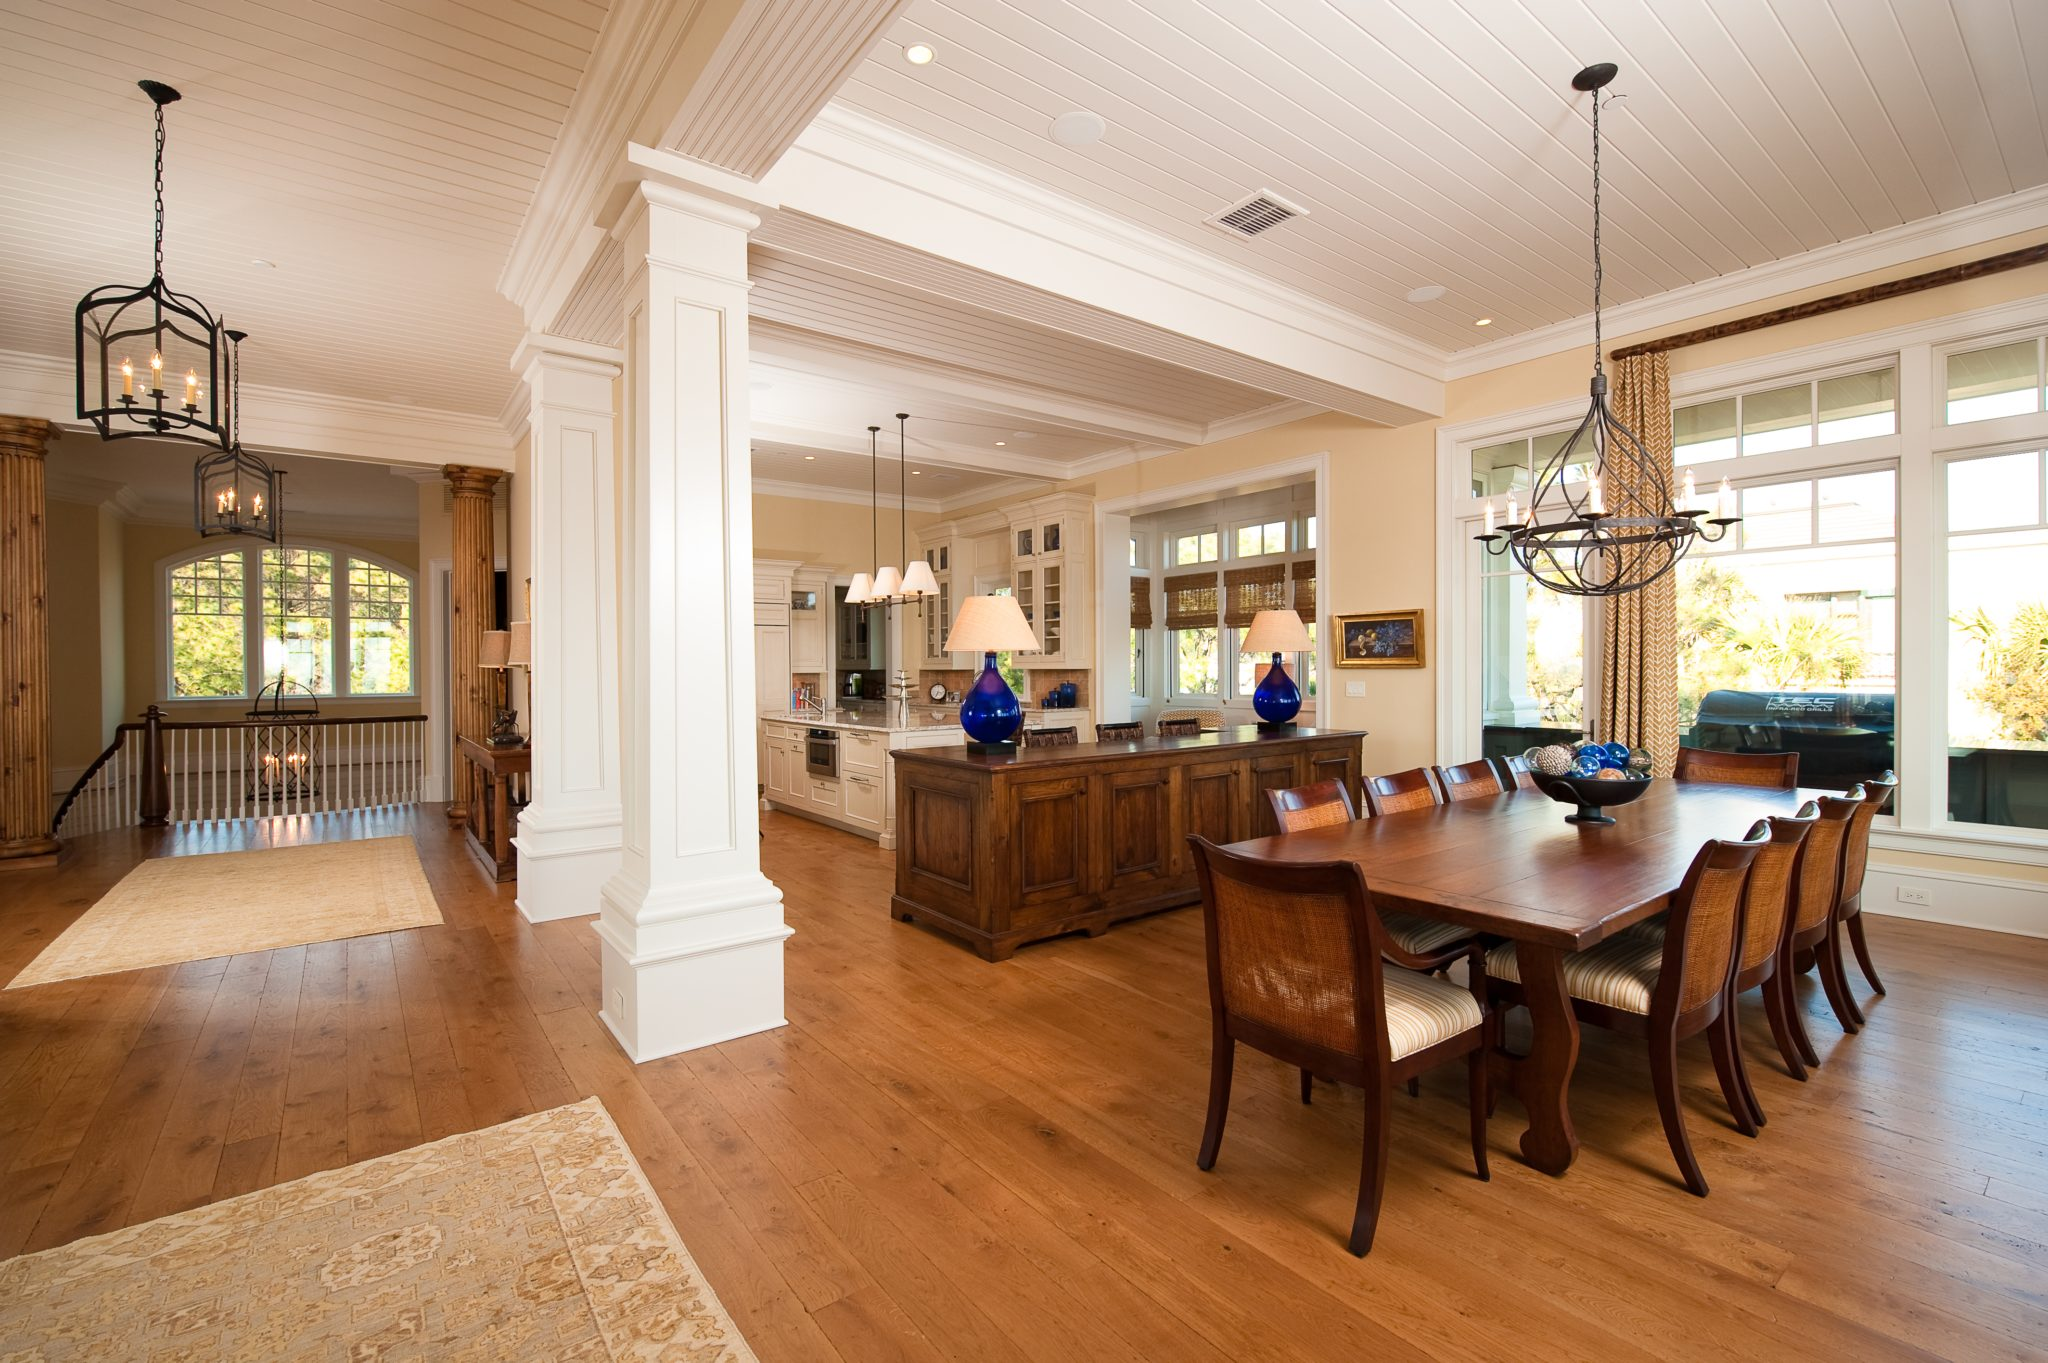 Classically detailed open concept dining room and kitchen by Island Architects